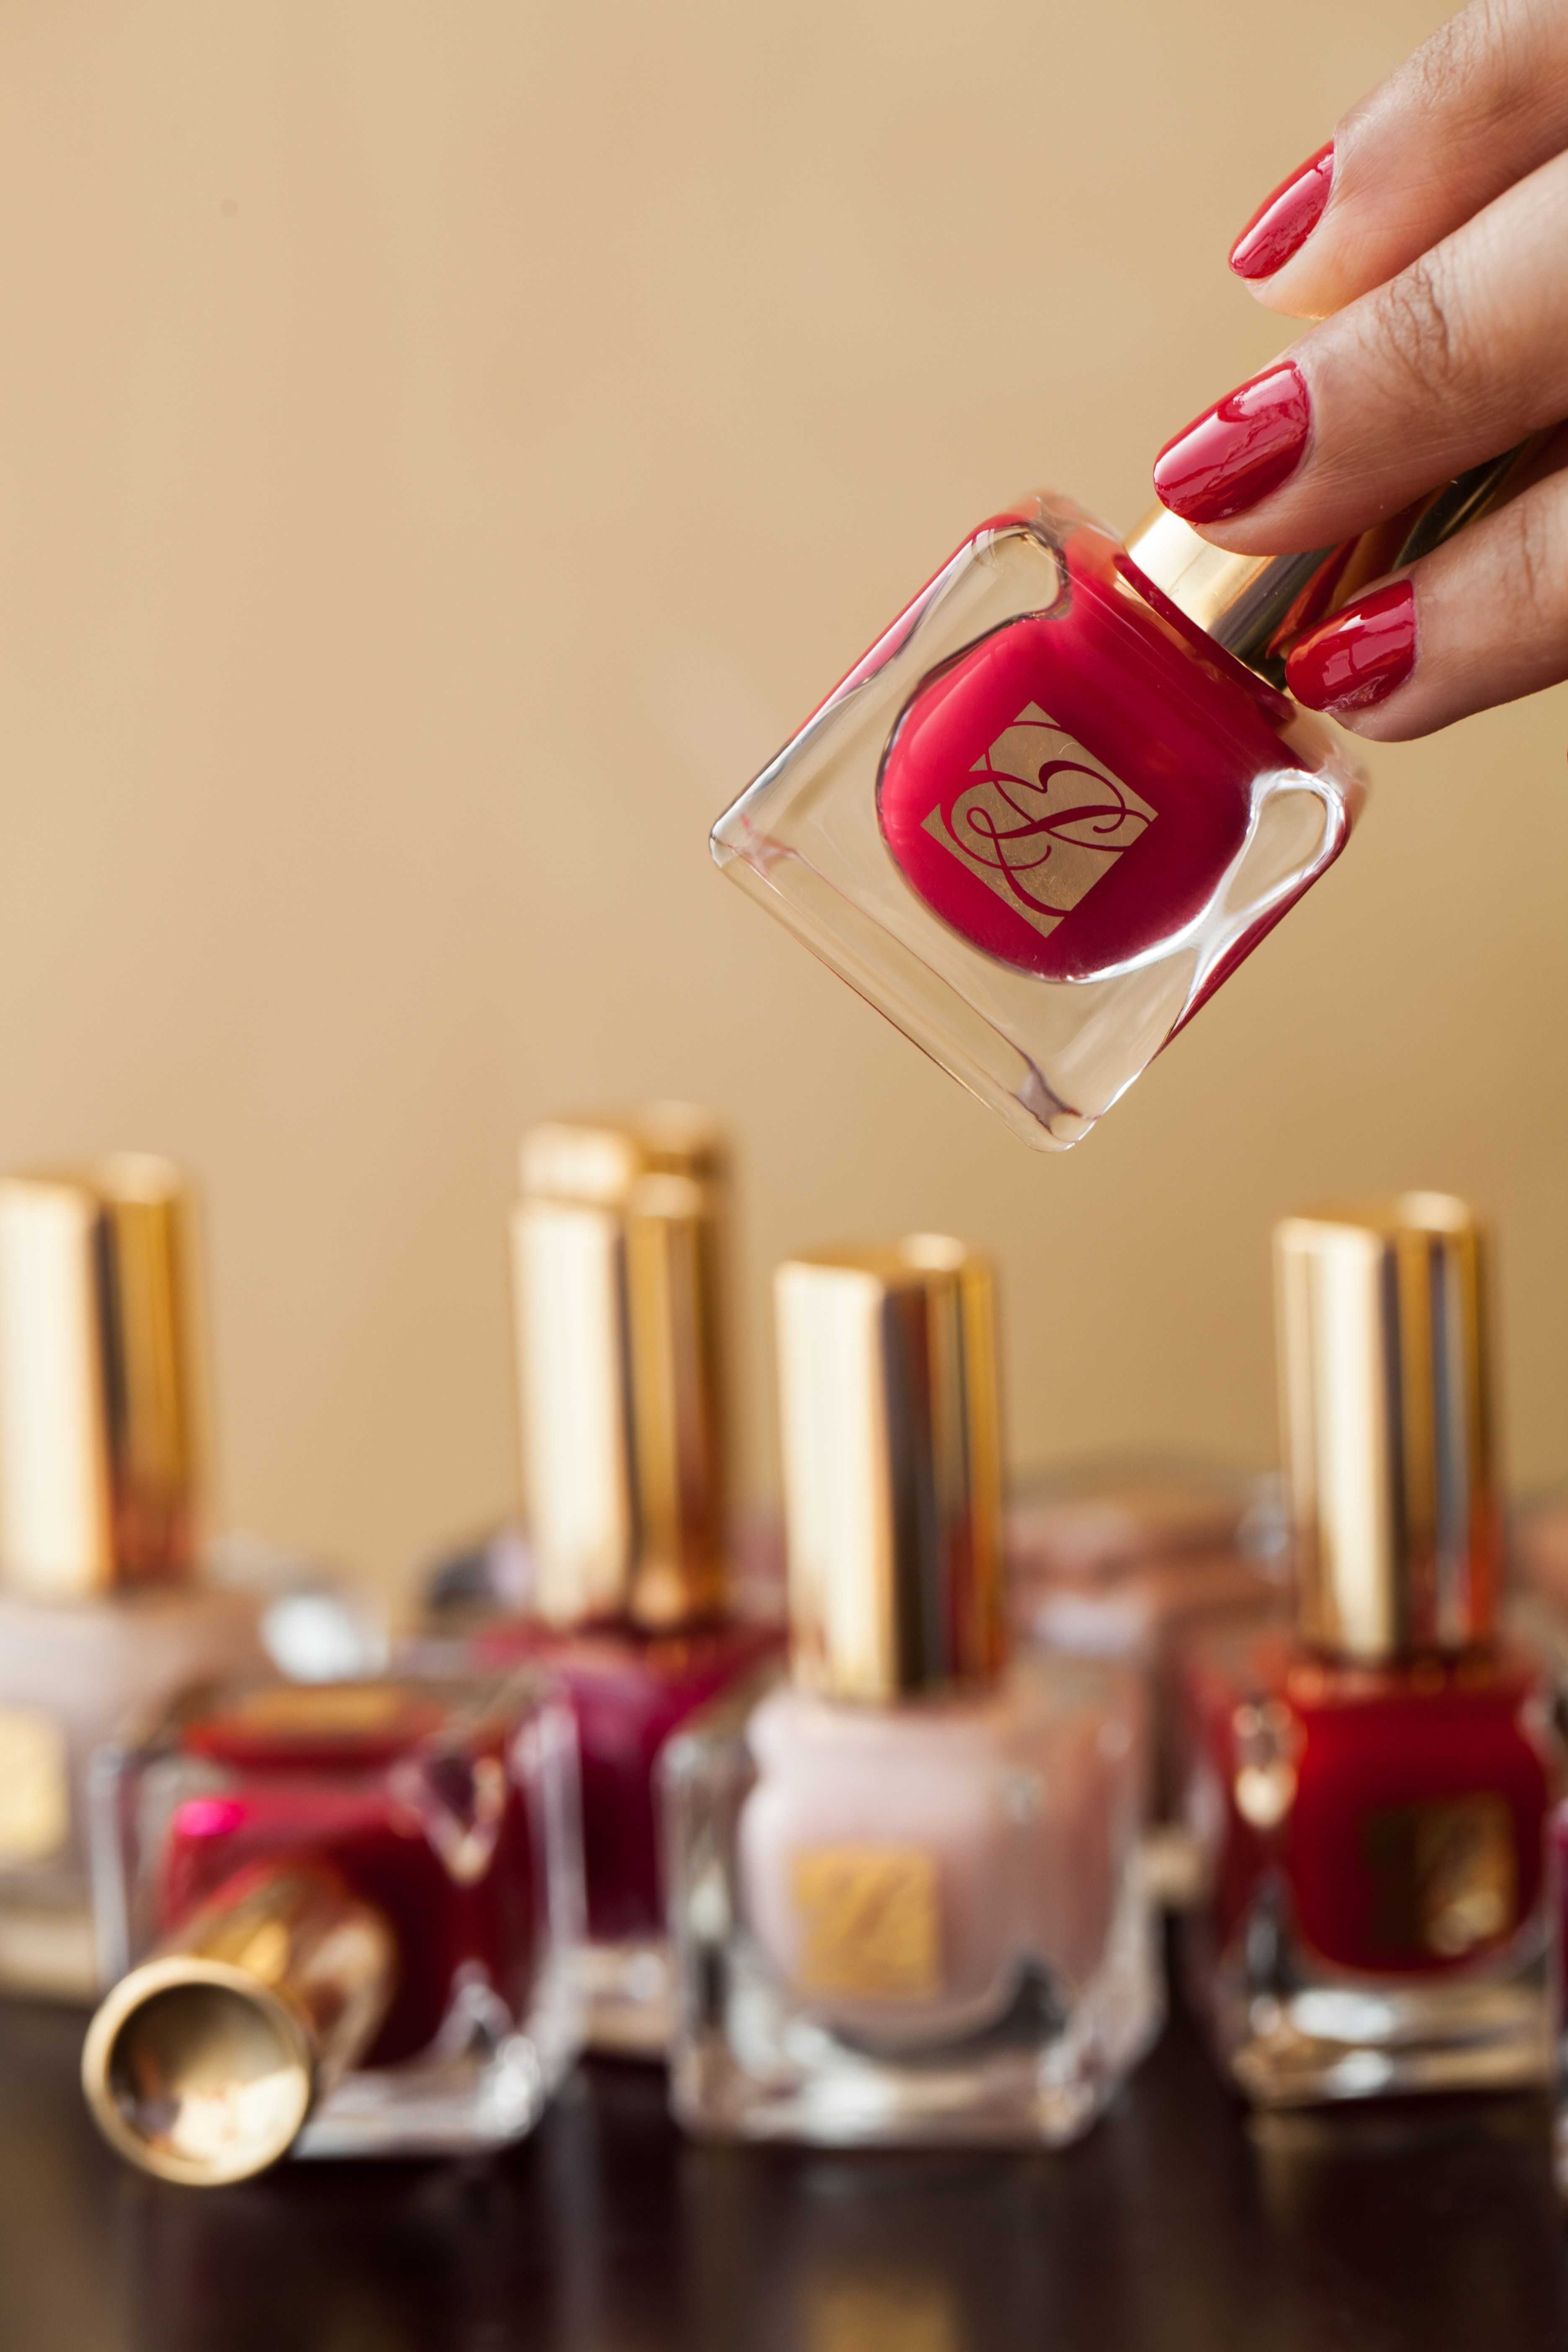 Pure Color - Nail Lacquer | Chess, Color nails and Estee lauder